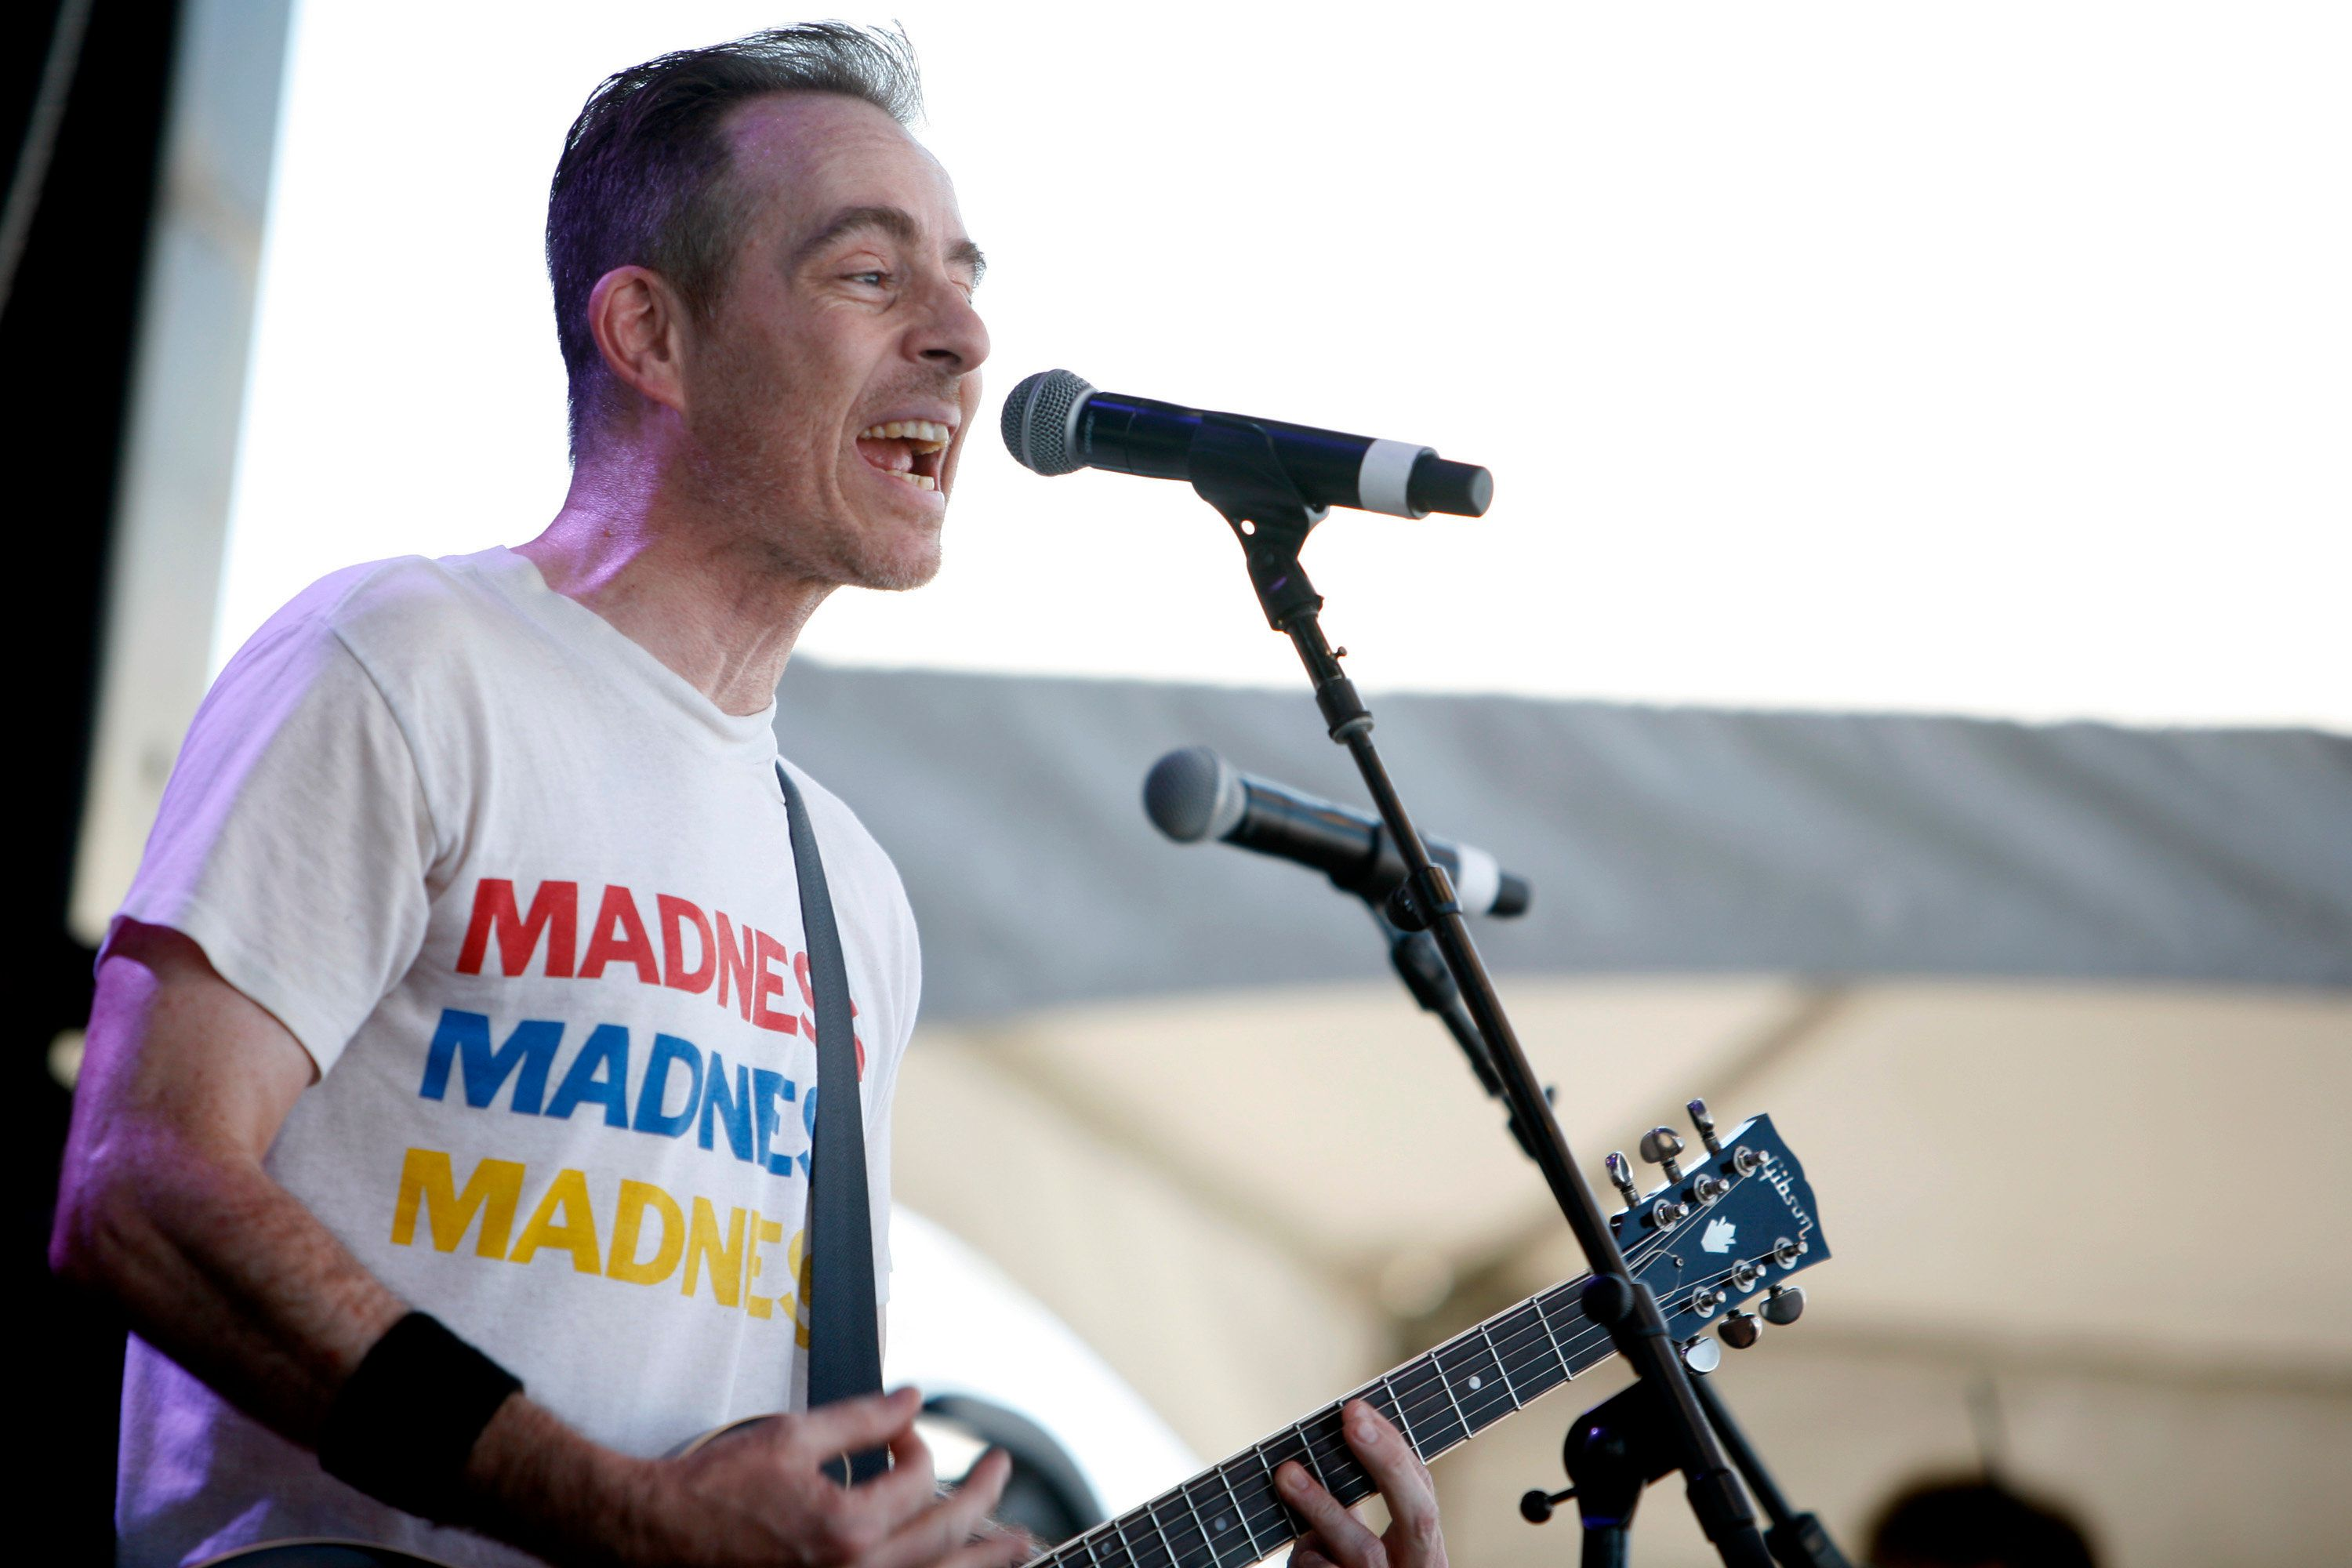 PORTLAND, OR - JULY 19:  Ted Leo of The Both performs during Project Pabst 2015 at Zidell Yards on July 19, 2015 in Portland, Oregon.  (Photo by Jackie Butler/WireImage)